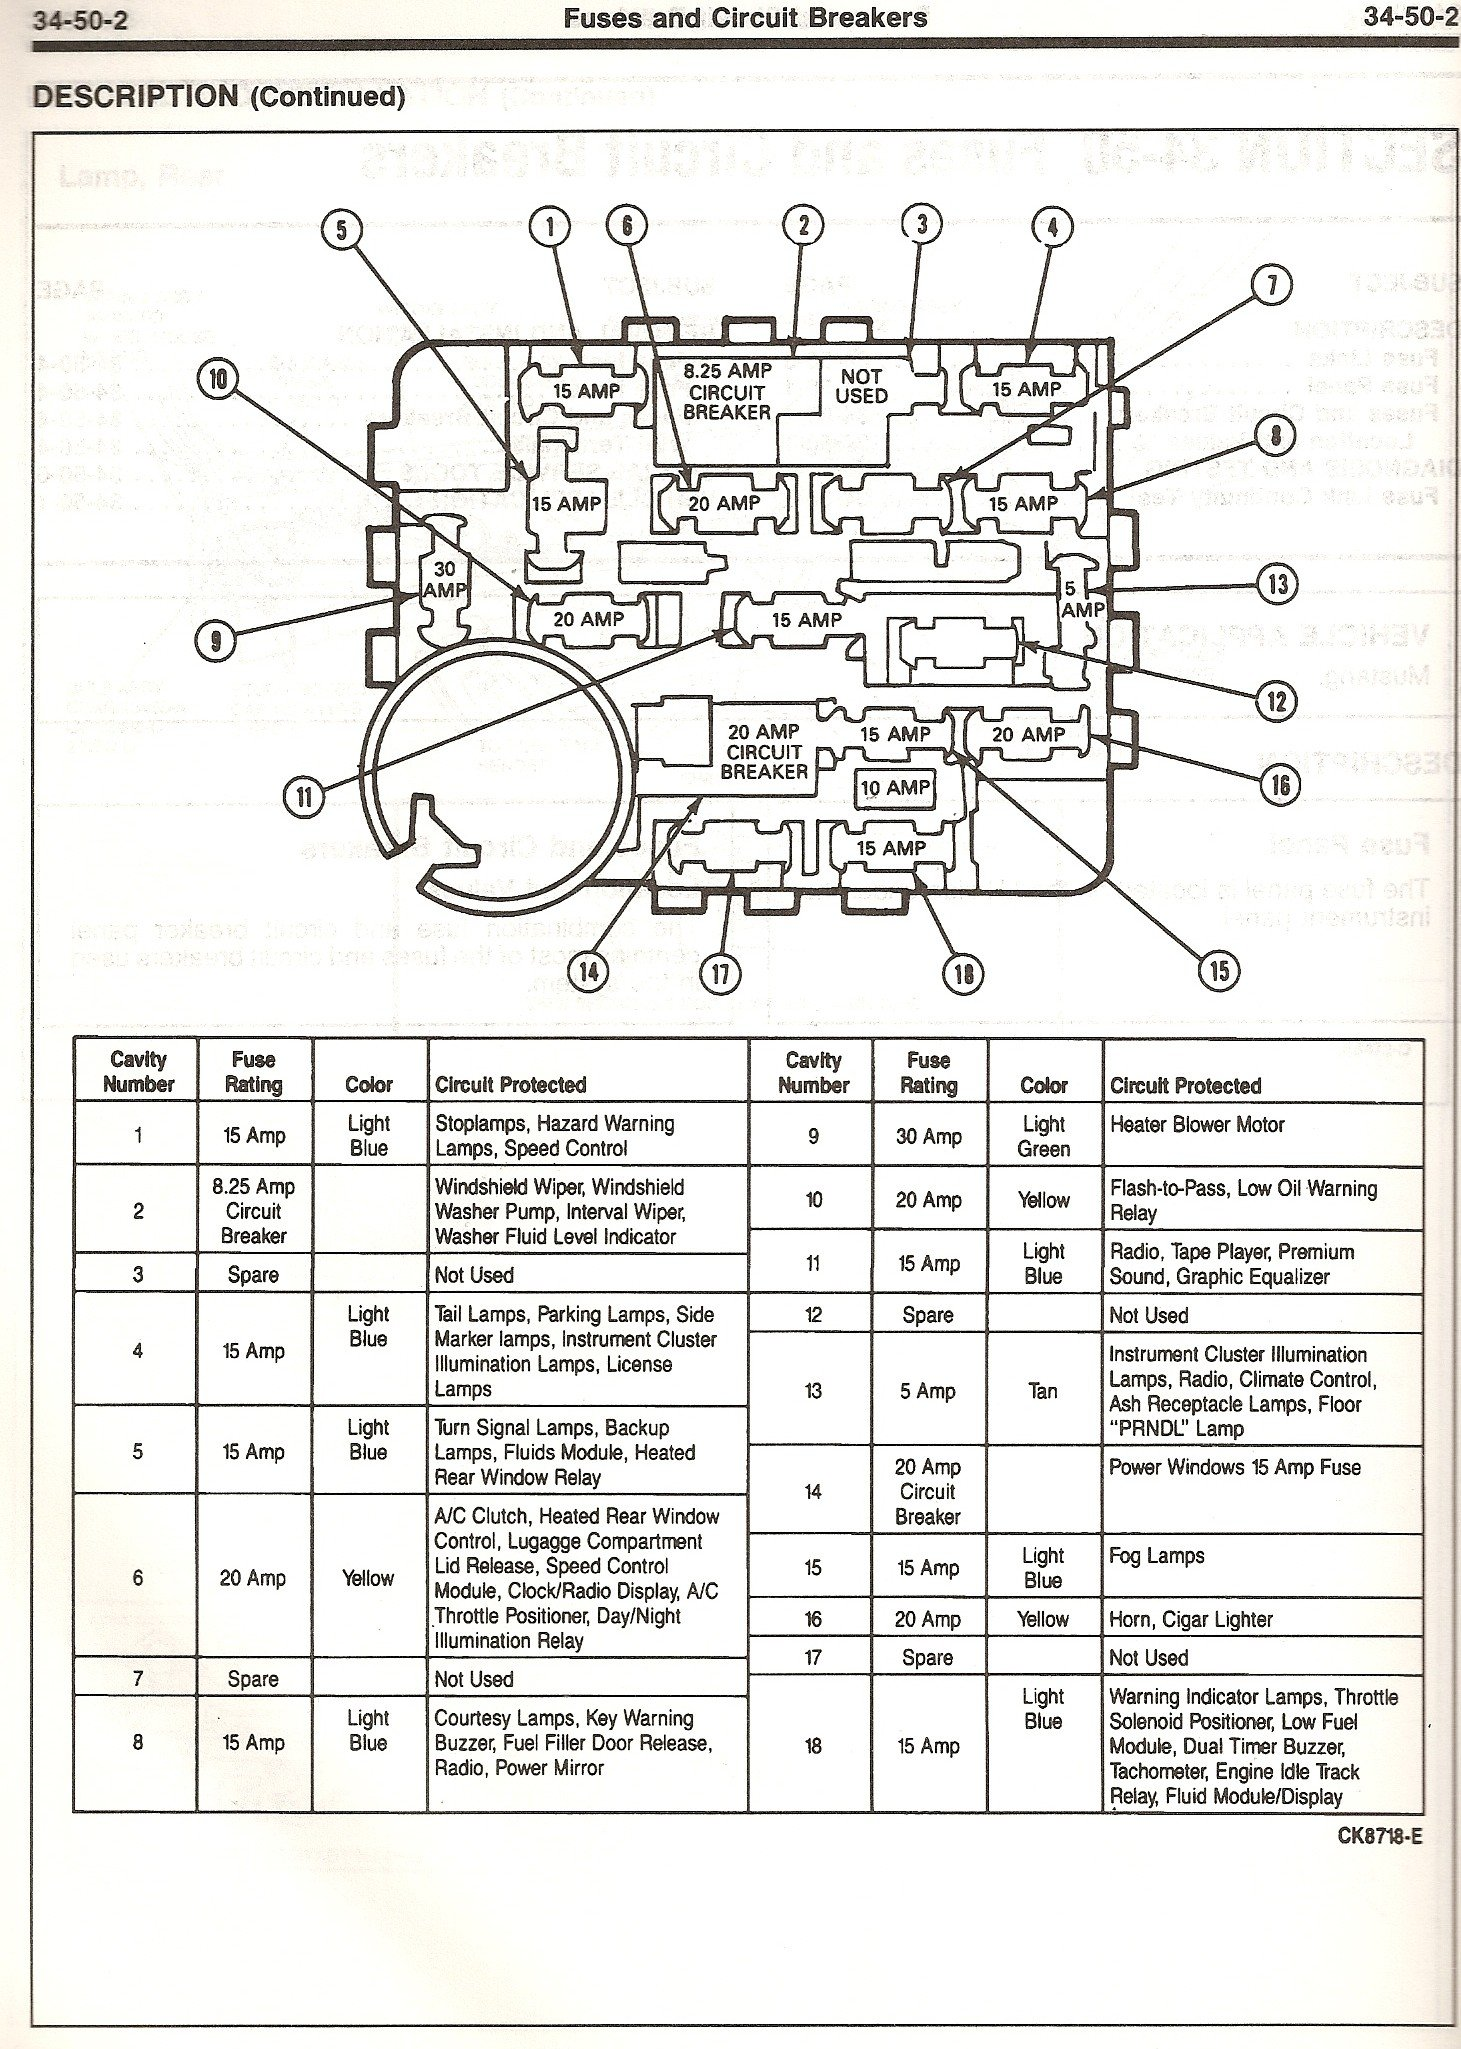 hight resolution of wiring diagram for 1993 dodge dakota 4x4 electrical wiring diagram87 dodge dakota fuse diagram library wiring